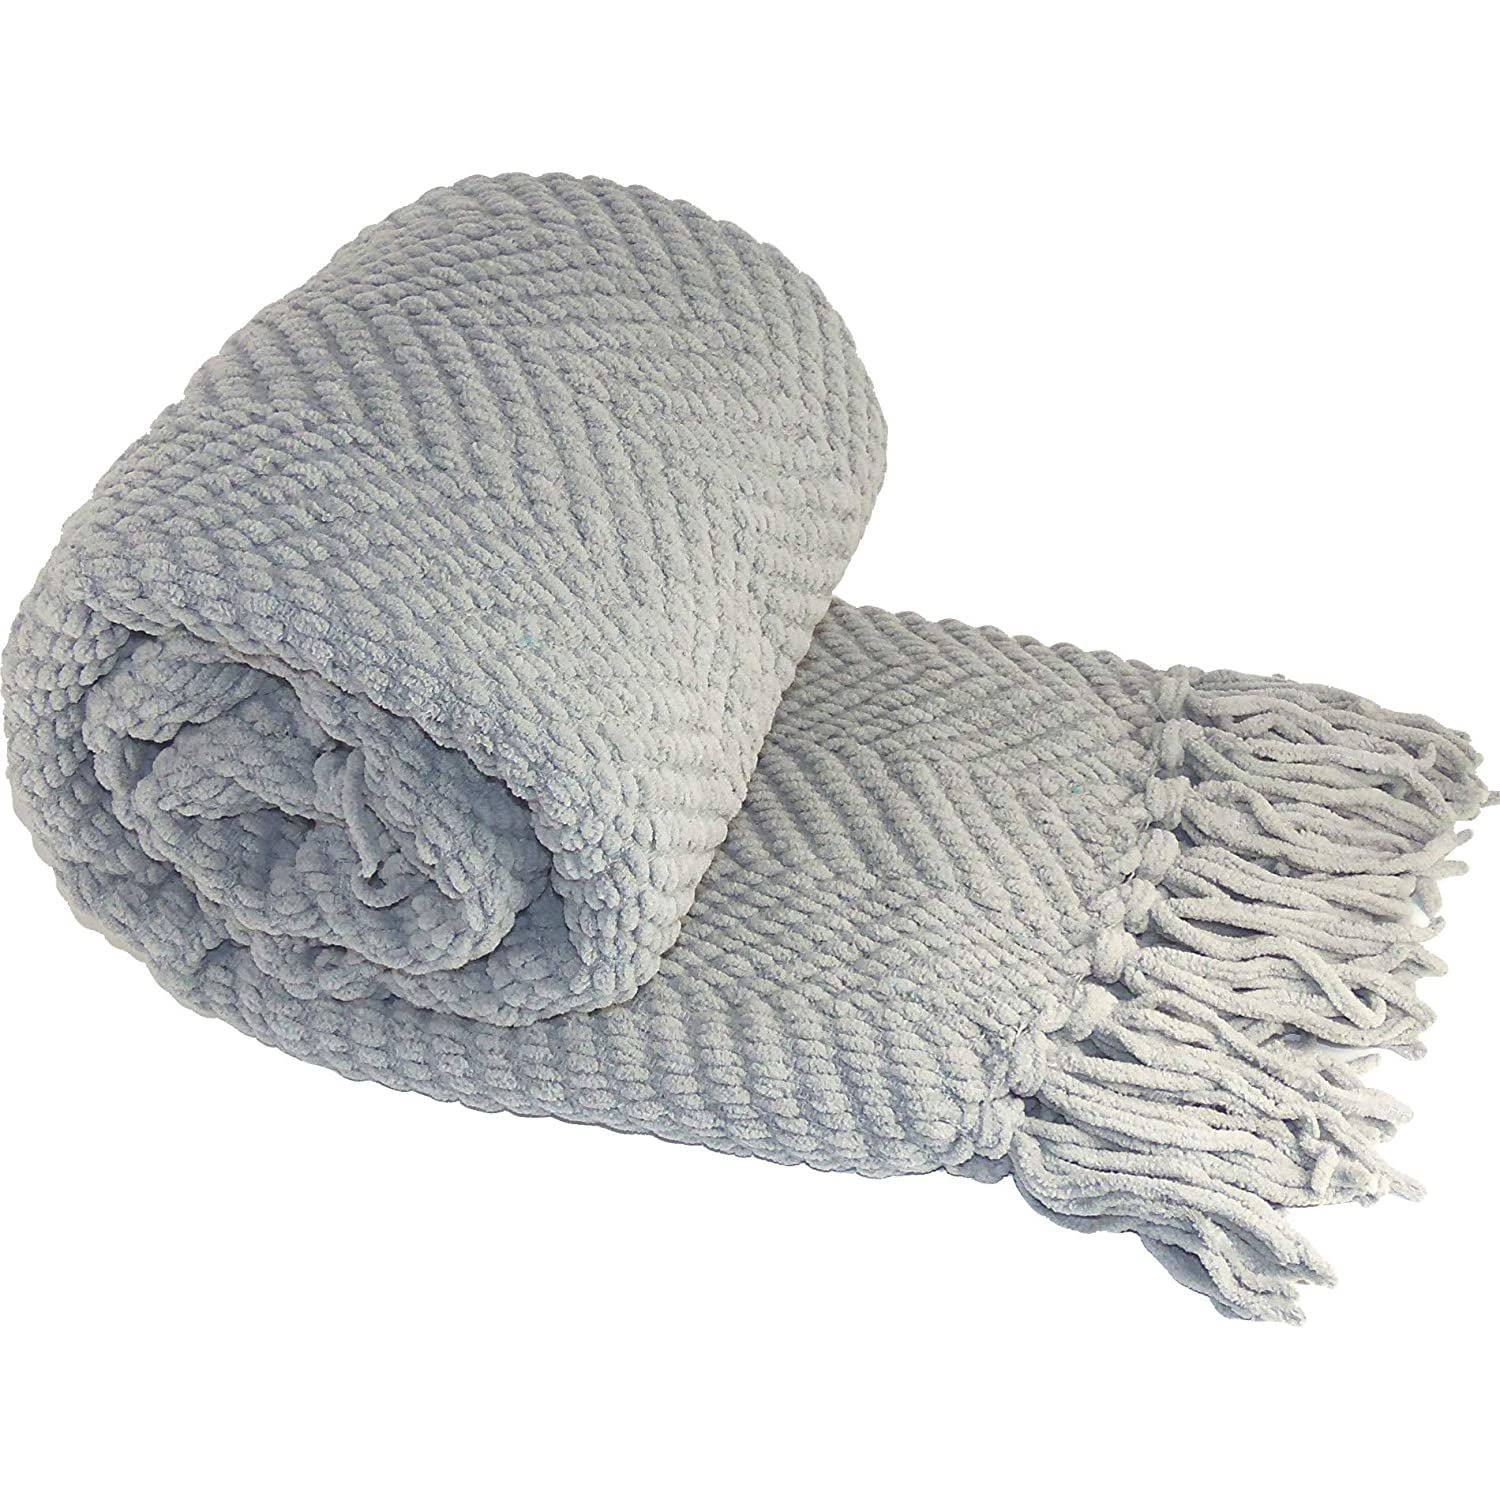 Home Soft Things Knitted Tweed Throw Couch Cover Blanket, 50 x 60